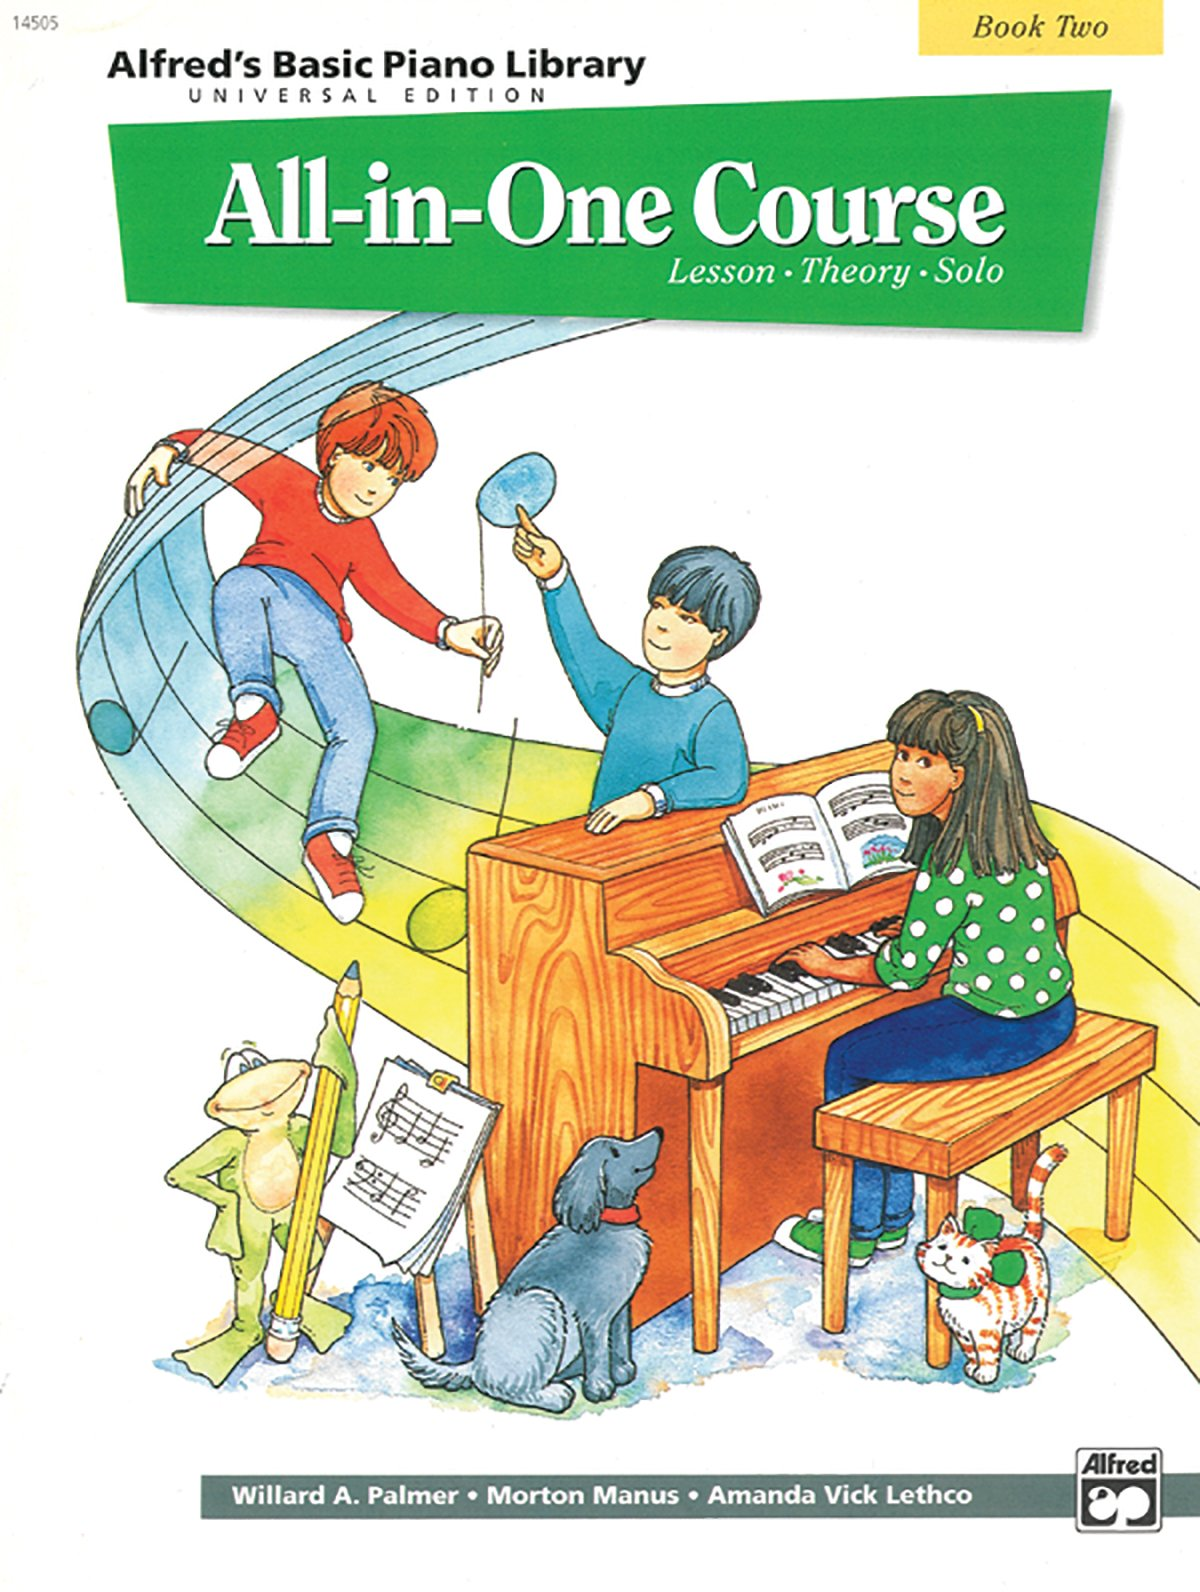 Alfreds Basic All In One Course Bk 2 Lesson Theory Solo Universal Edition Piano Library Amazoncouk Willard Palmer